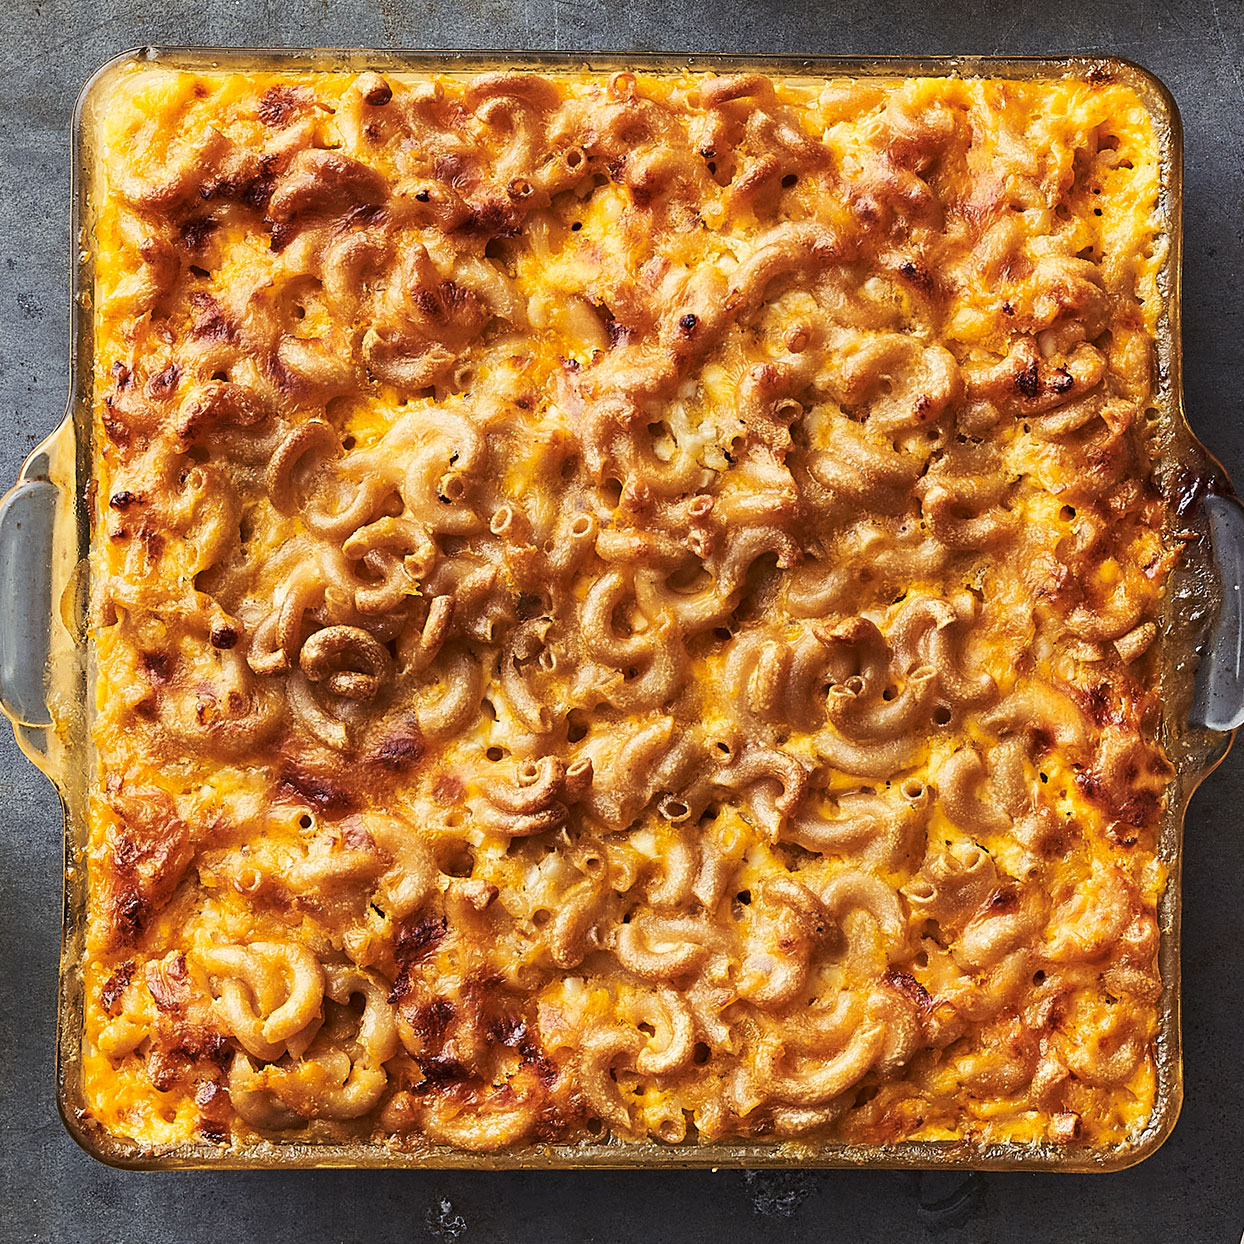 Mable's Mac 'n' Cheese